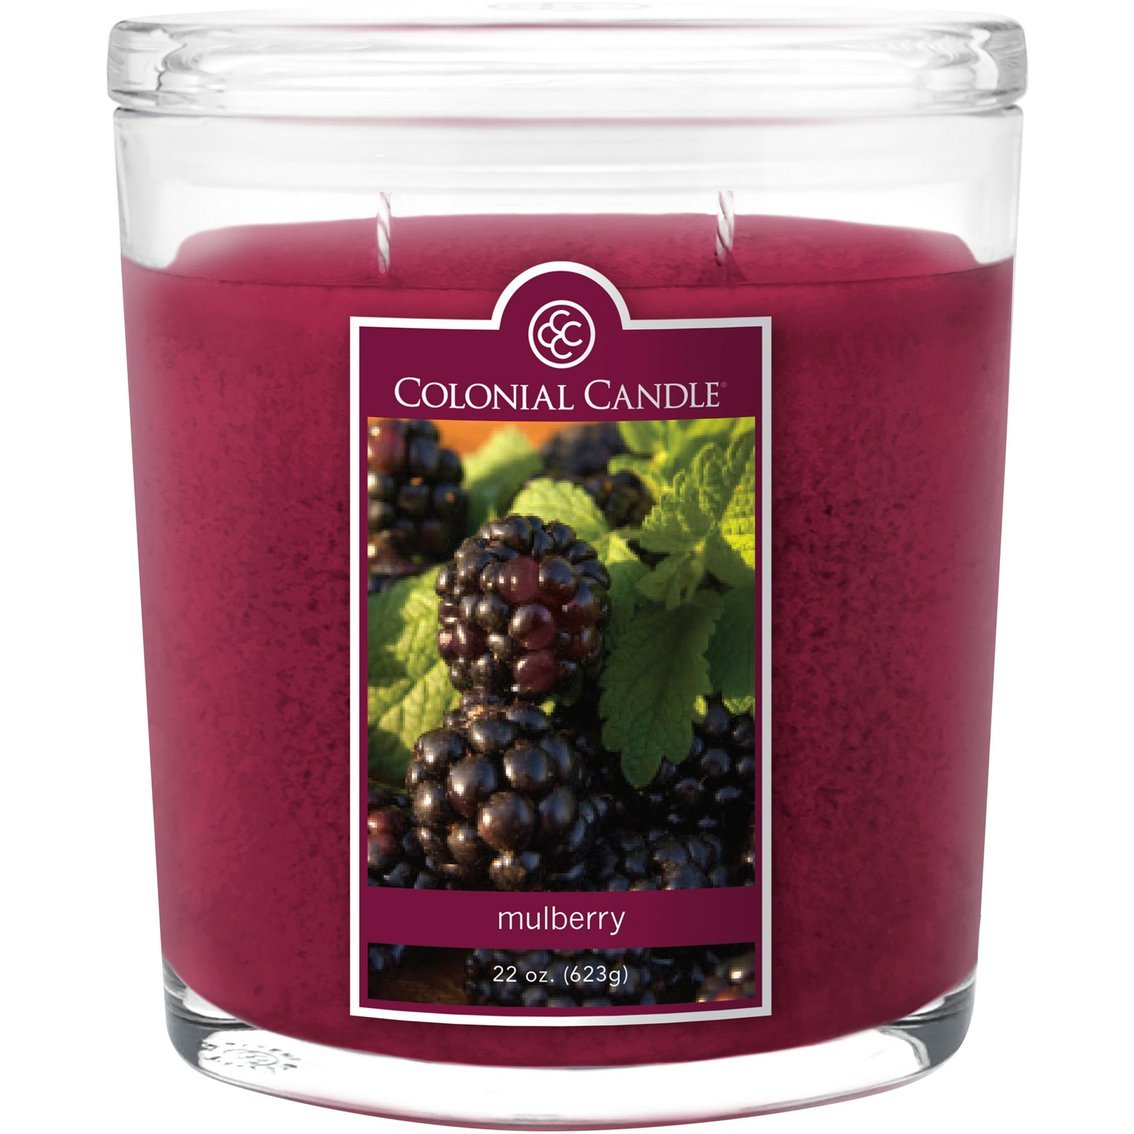 083bca4842 Amazon.com  Colonial Candle Mulberry 22 oz Scented Oval Jar Candle  Home    Kitchen